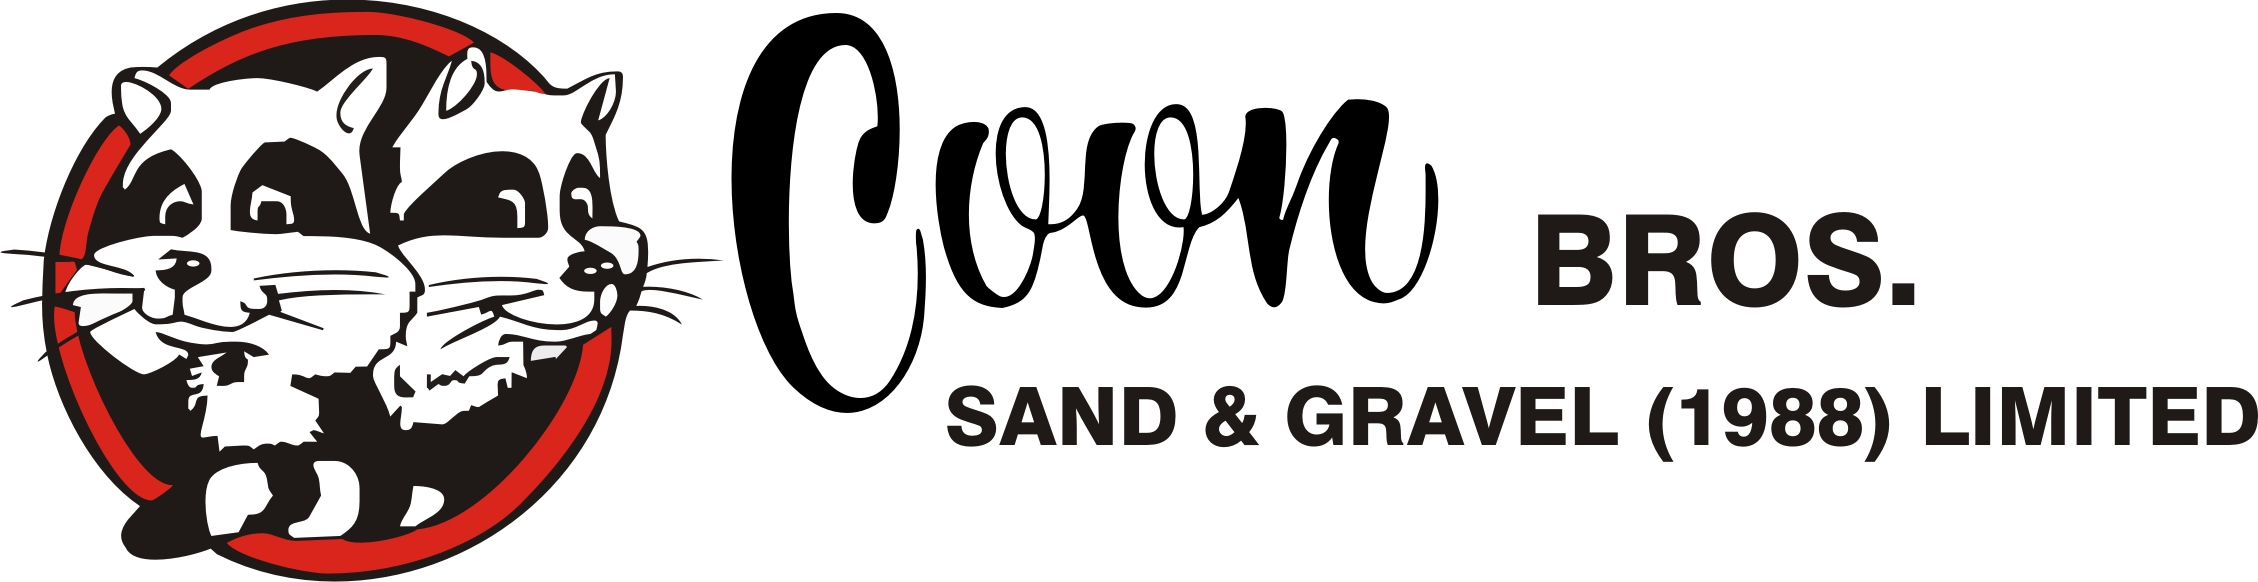 Coon Brothers Sand & Gravel